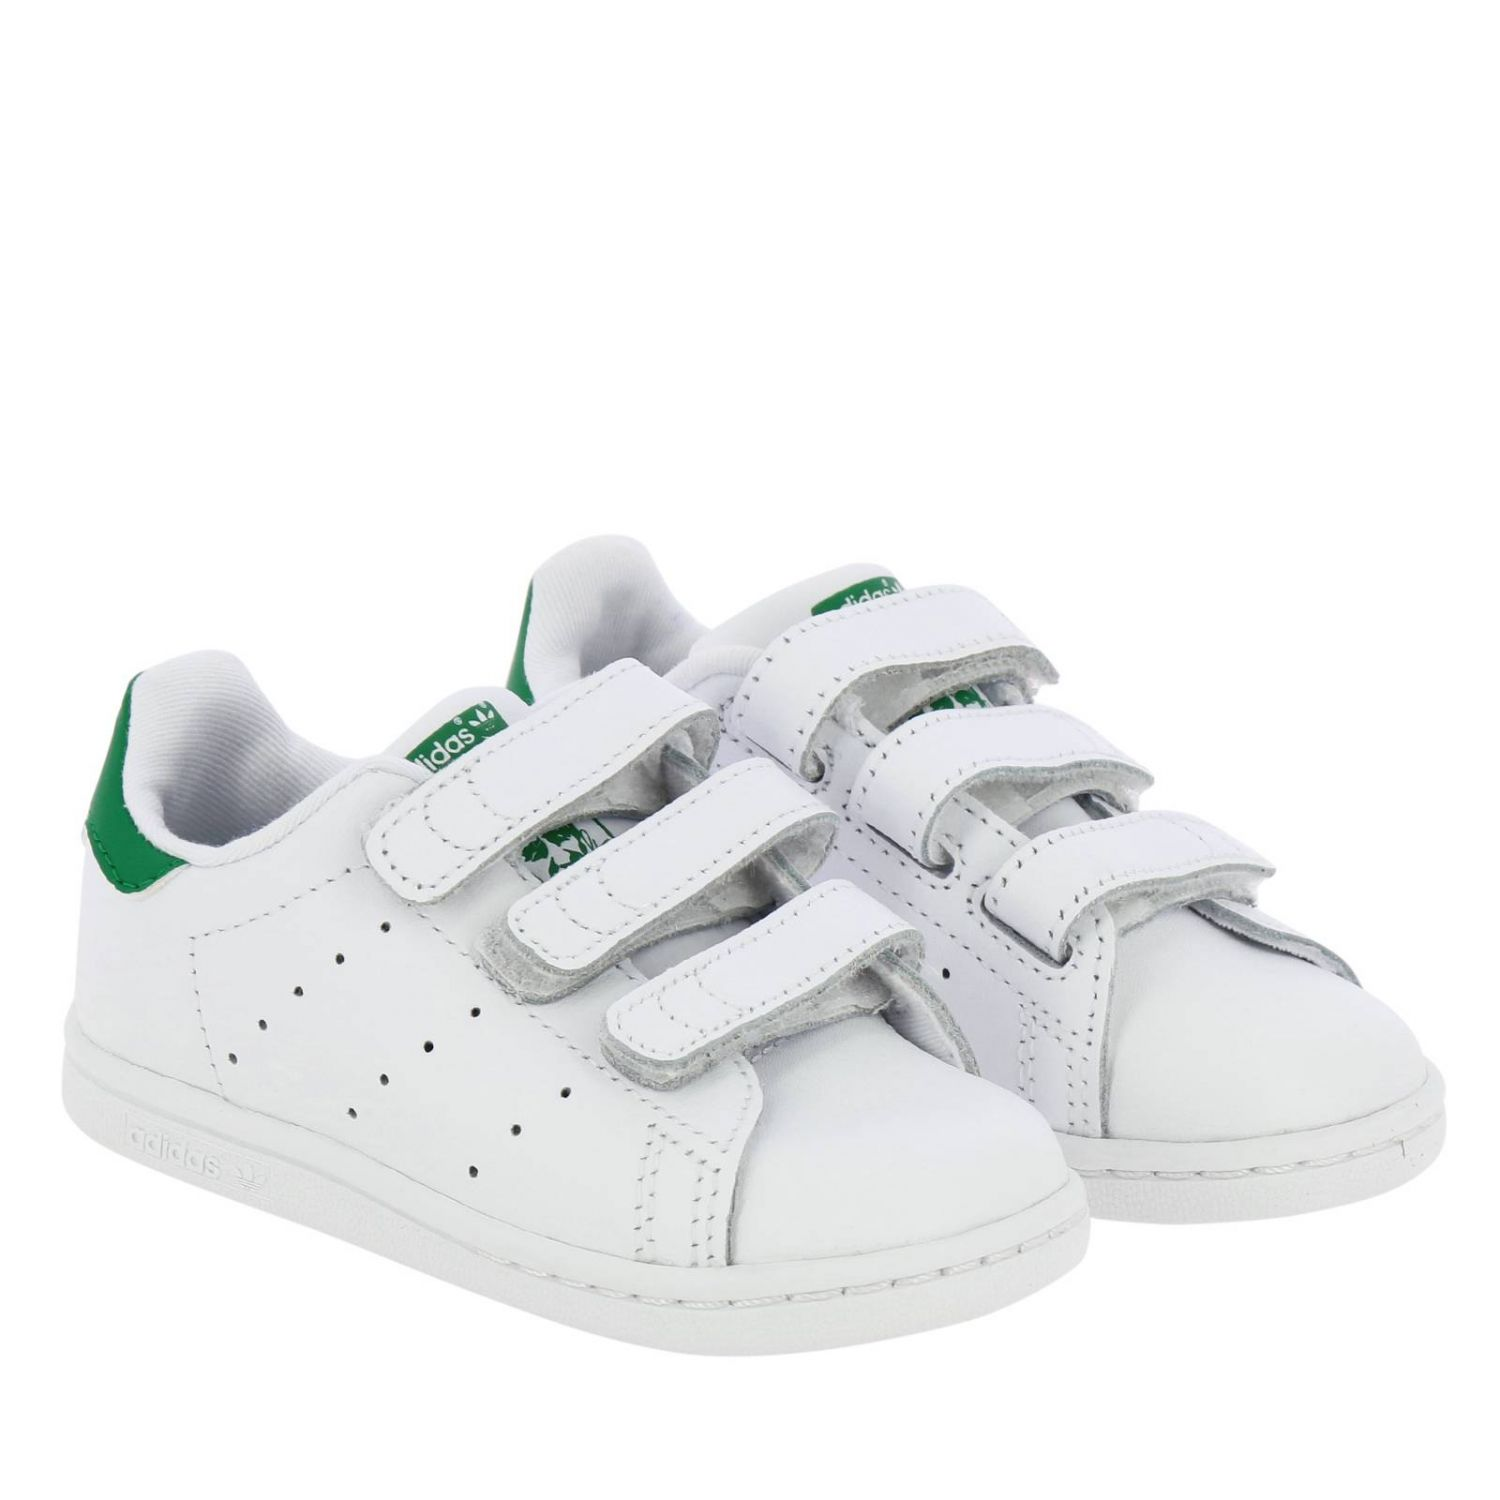 Stan Smith Adidas Originals Sneakers in smooth leather with colored heel white 2